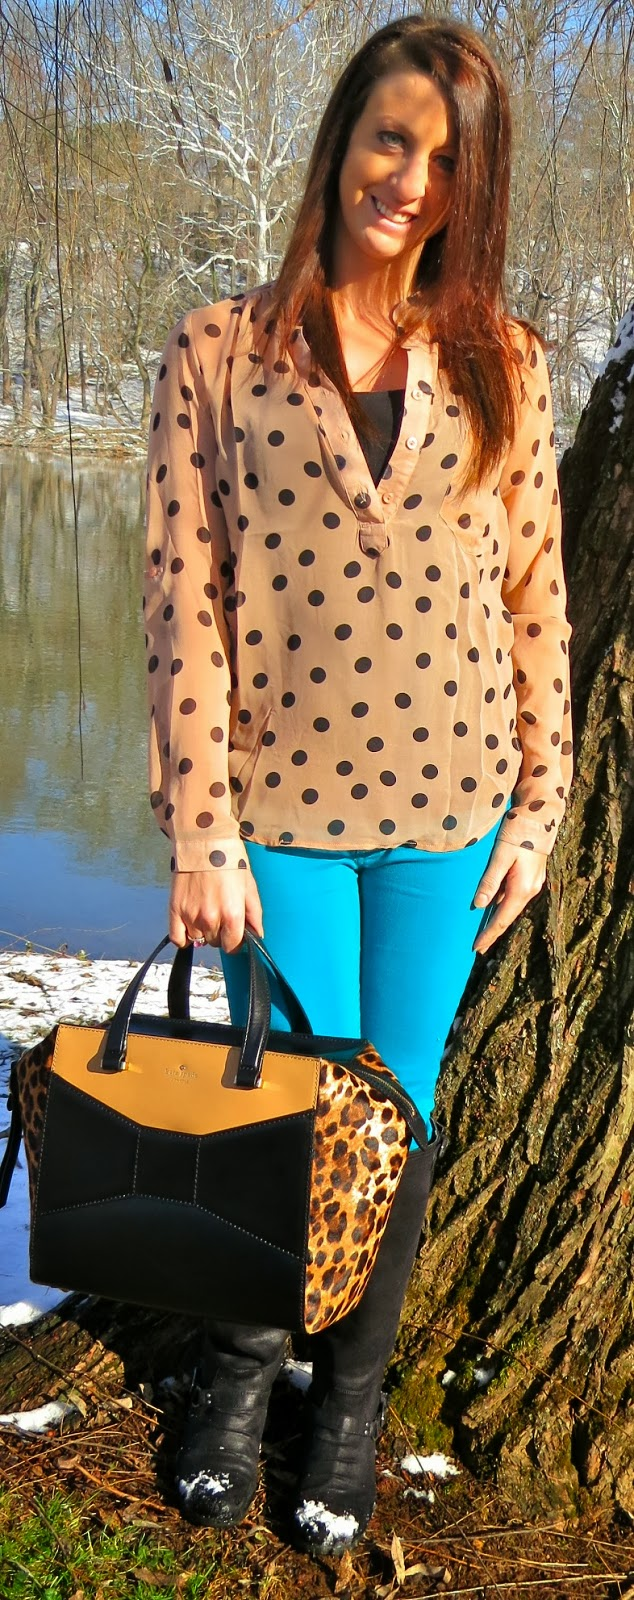 Fashion, kate spade, ootd, Outfit Ideas, outfit of the day, Outfits, pink, stripes, what i wore, kate spade leopard beau bag, 2 park avenue beau bag